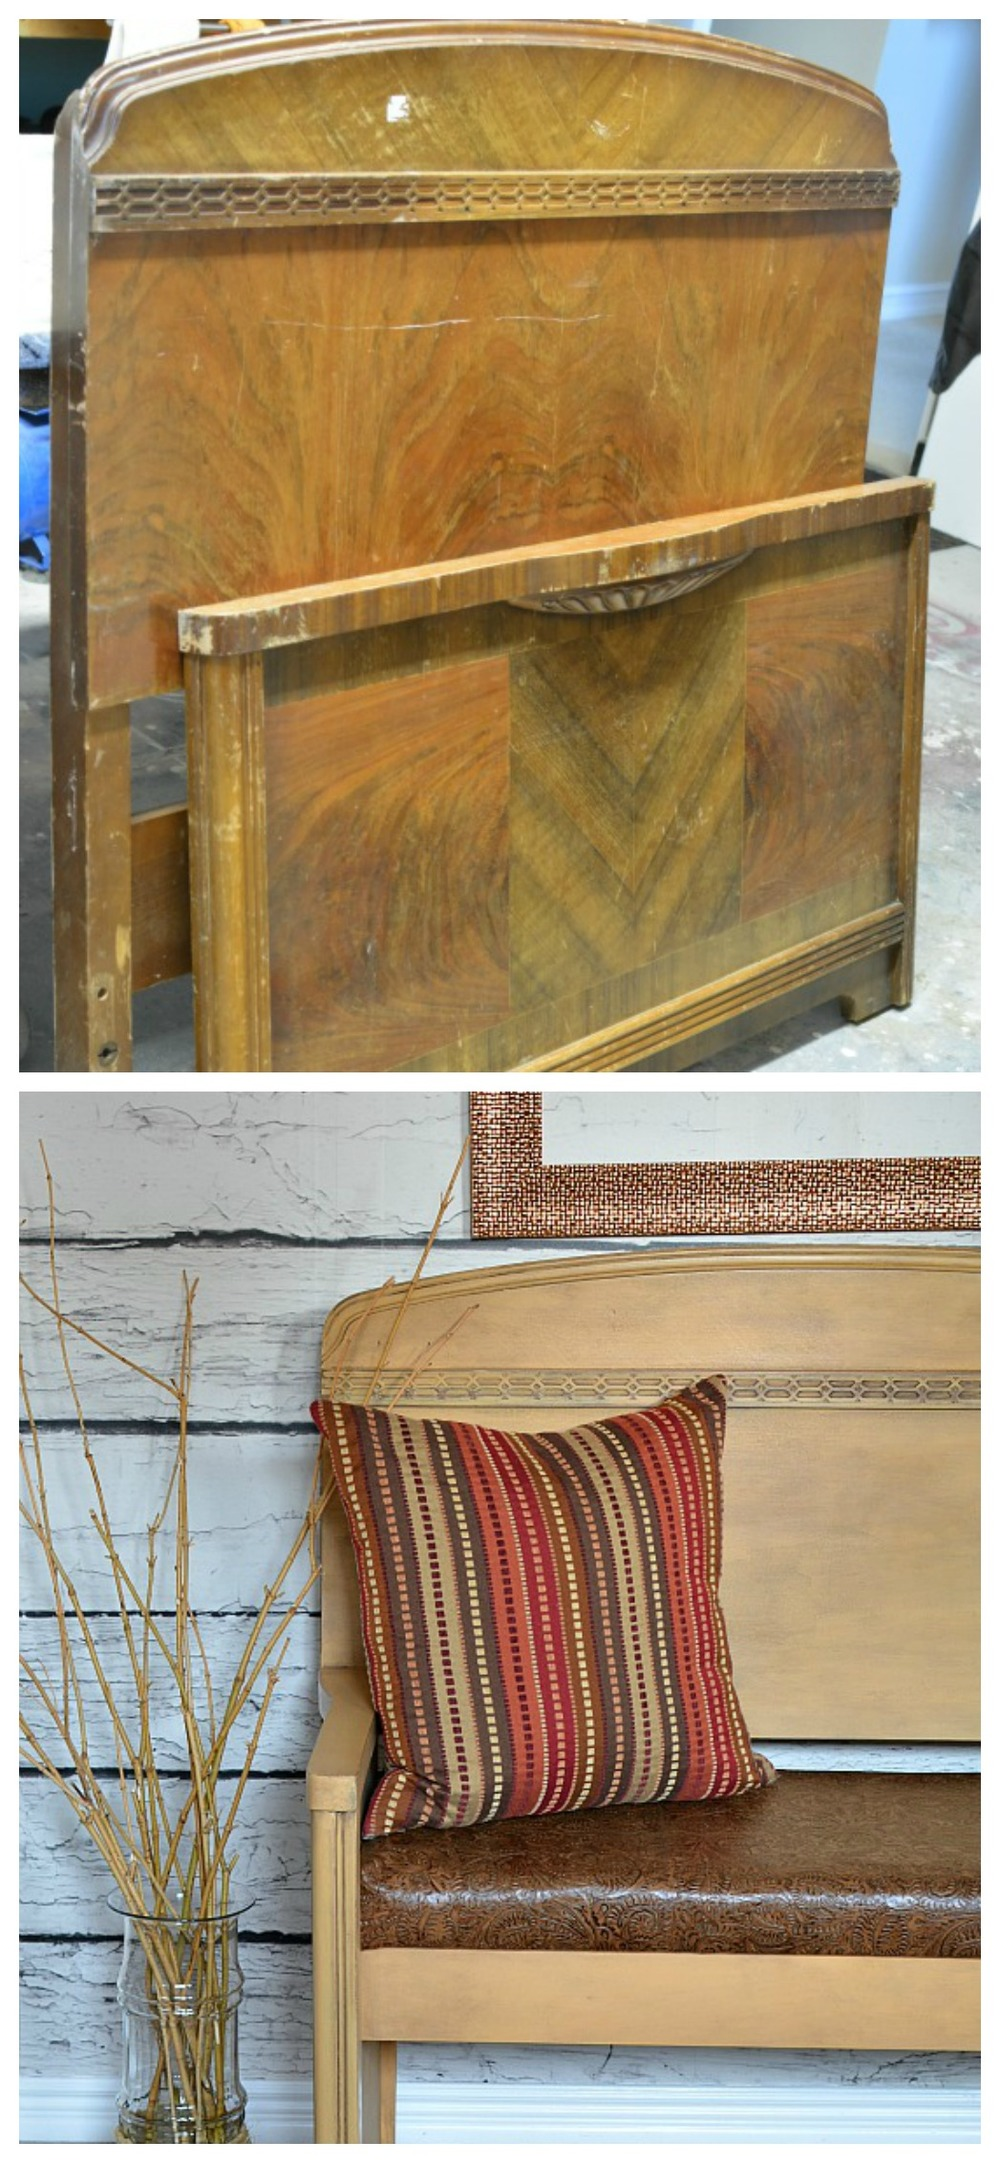 Headboard to leather bench Collage.jpg